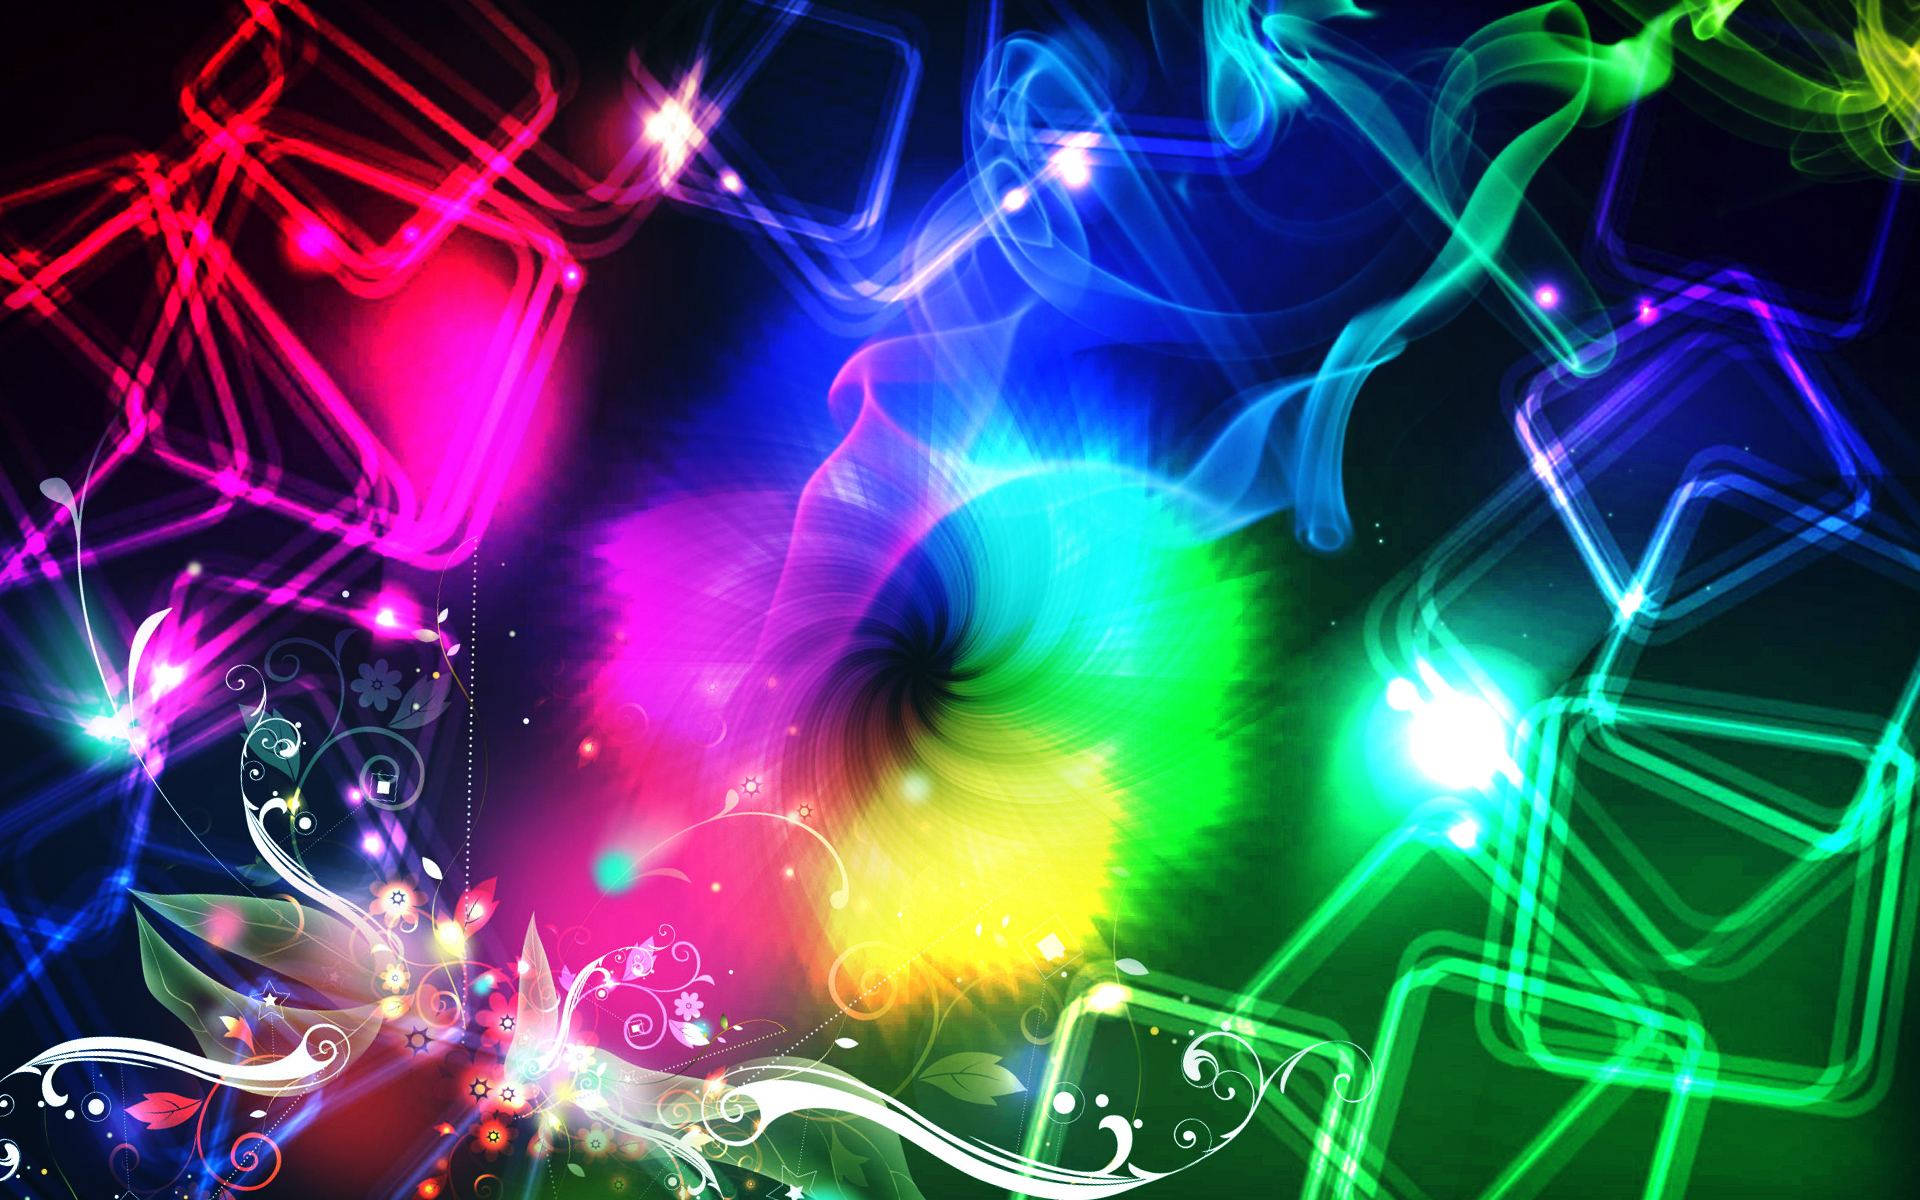 Rainbow Music Notes Background Hd Wallpaper Background Images: Colorful Wallpapers, Pictures, Images